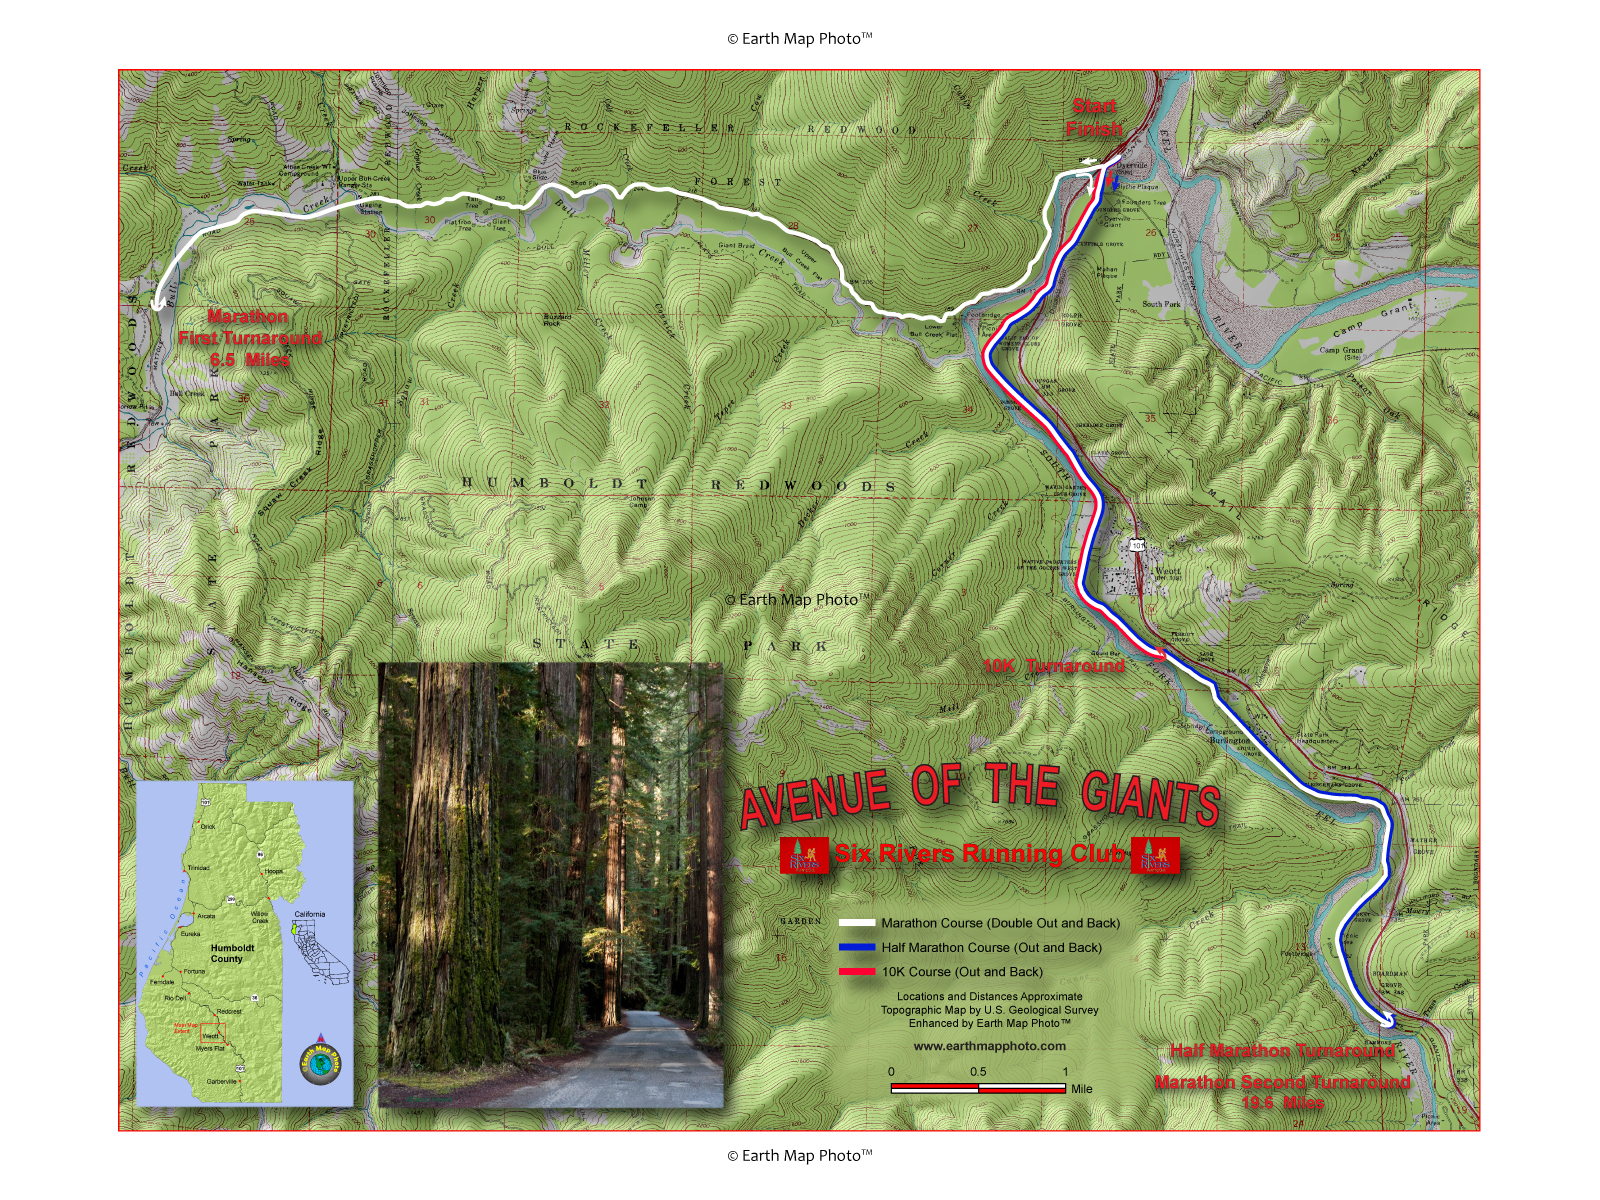 10K Avenue Of The Giants Map on